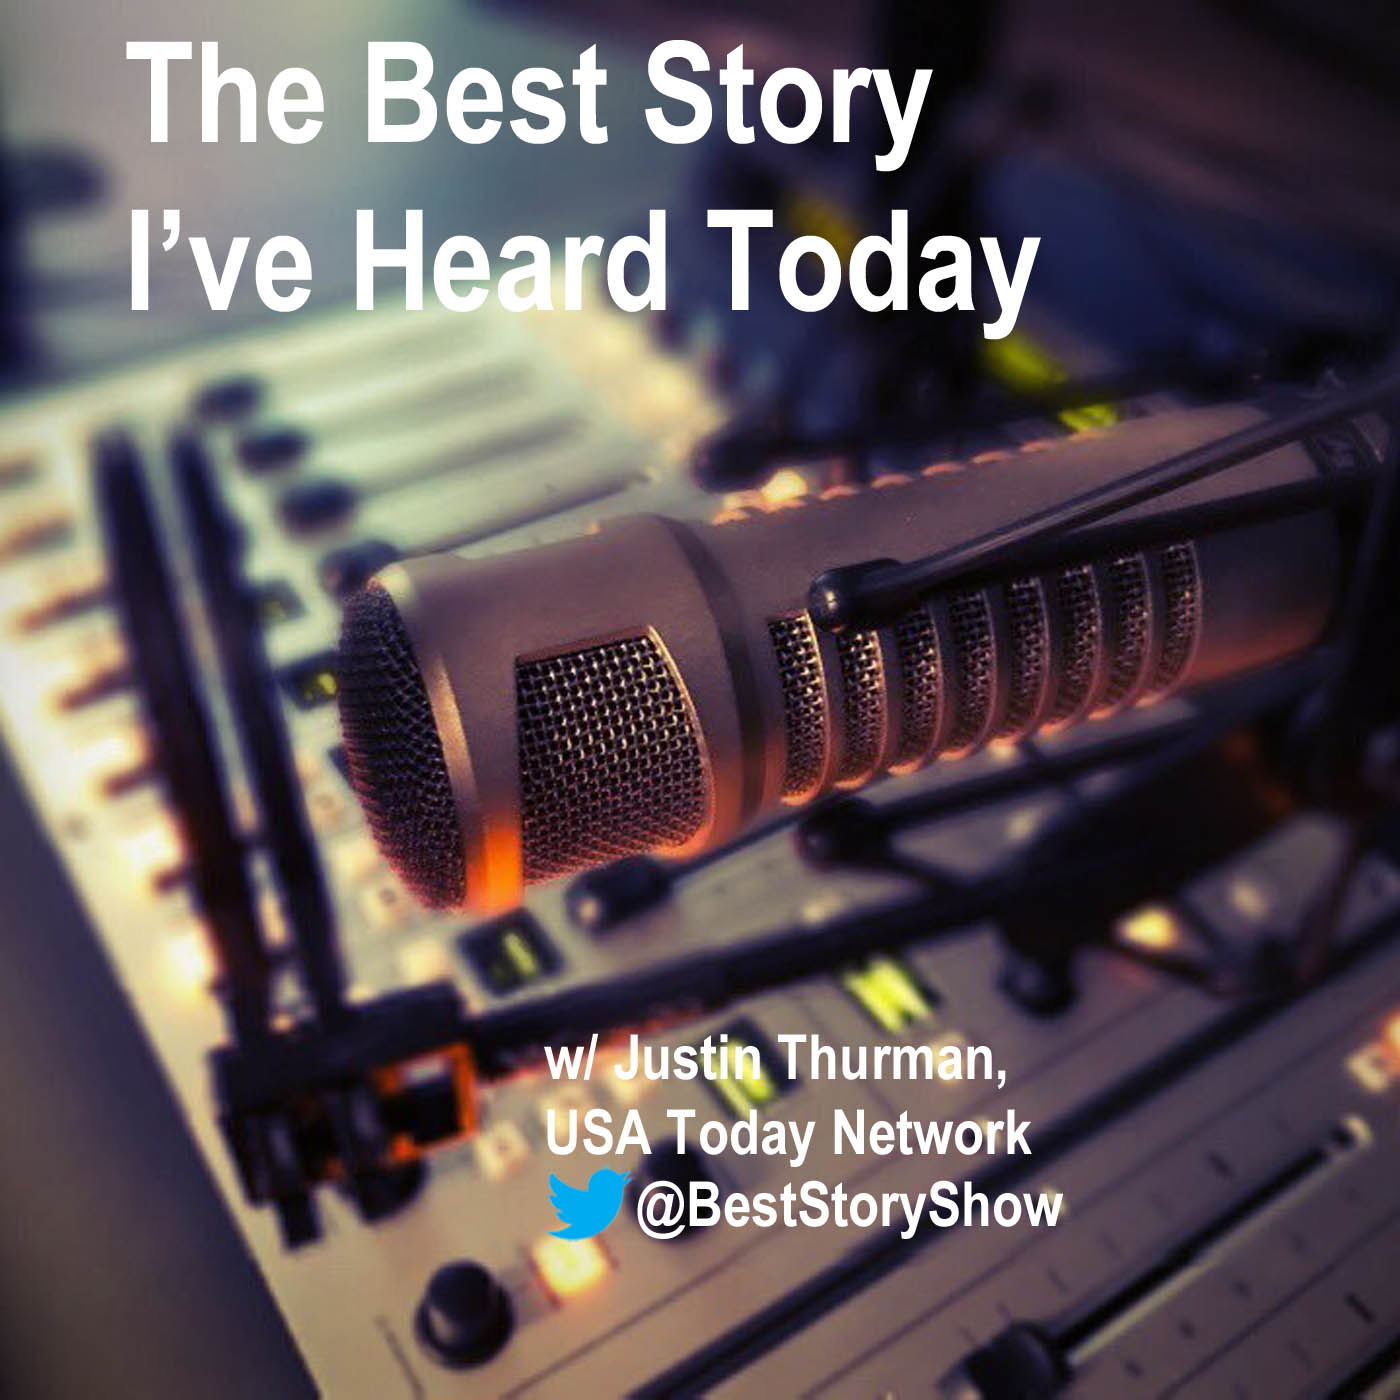 The Best Story I've Heard Today with USA Today Network's Justin Thurman